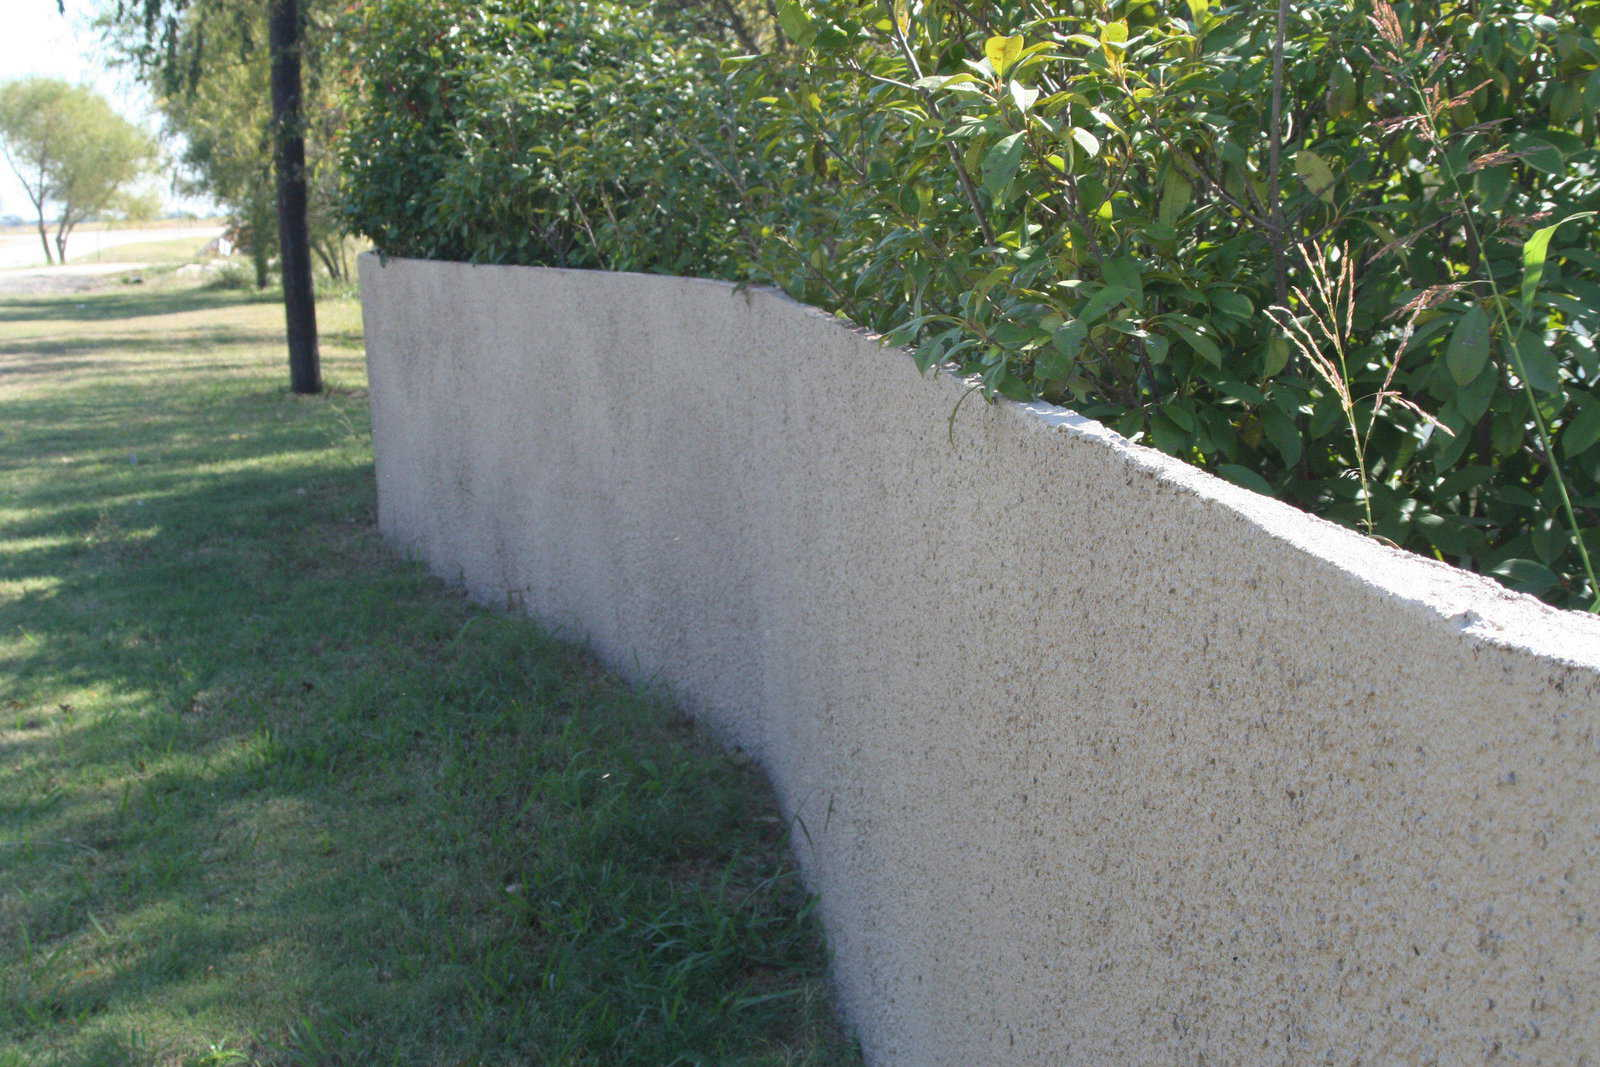 Spray In Place Concrete Fences How To Get Just The Look